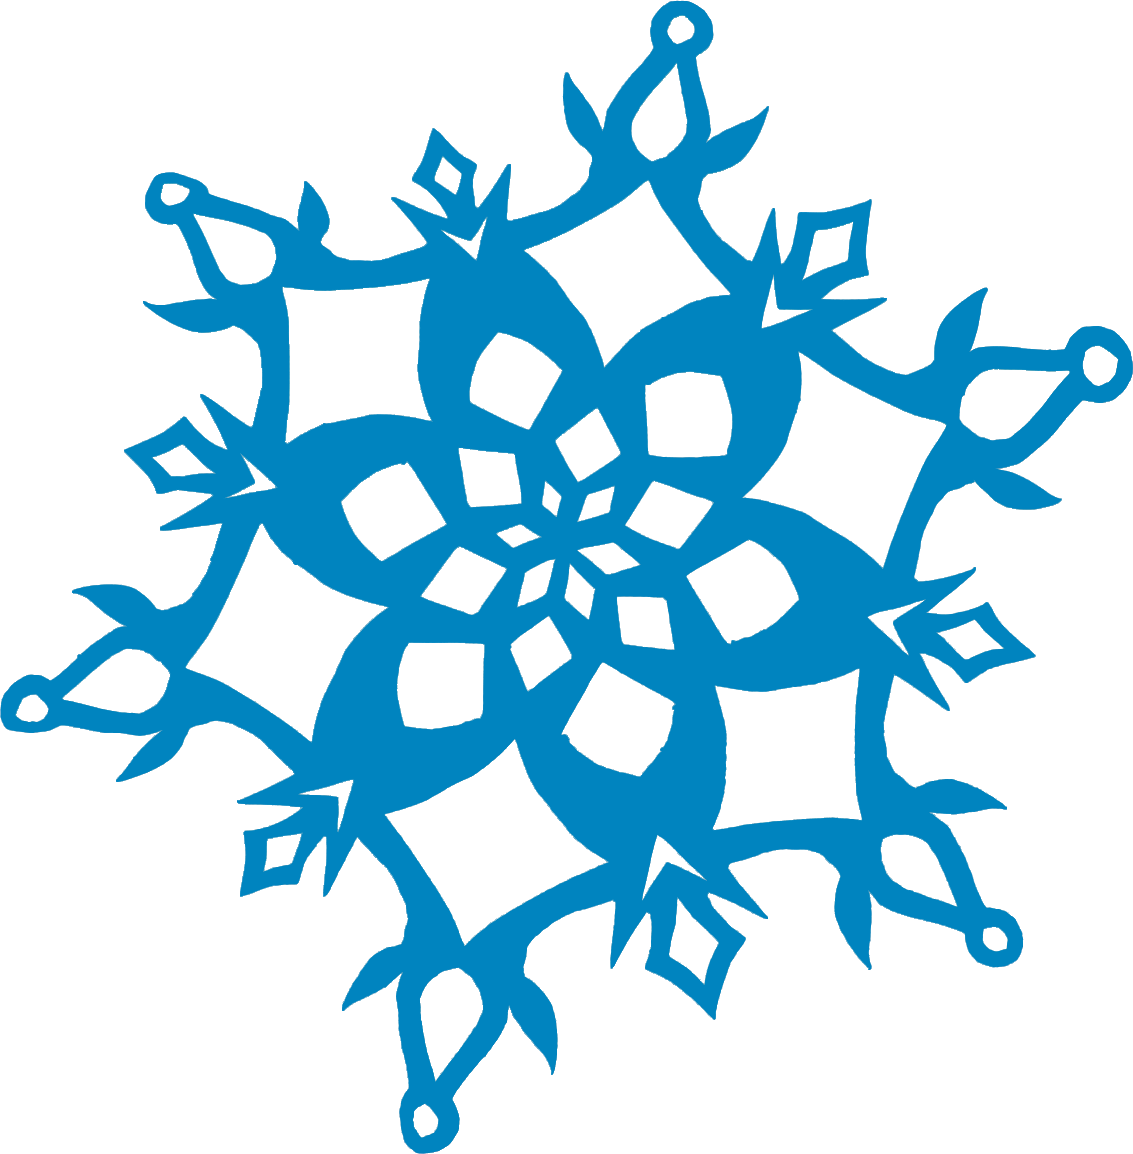 Libella shrinky dink earrings. Clipart snowflake cut out